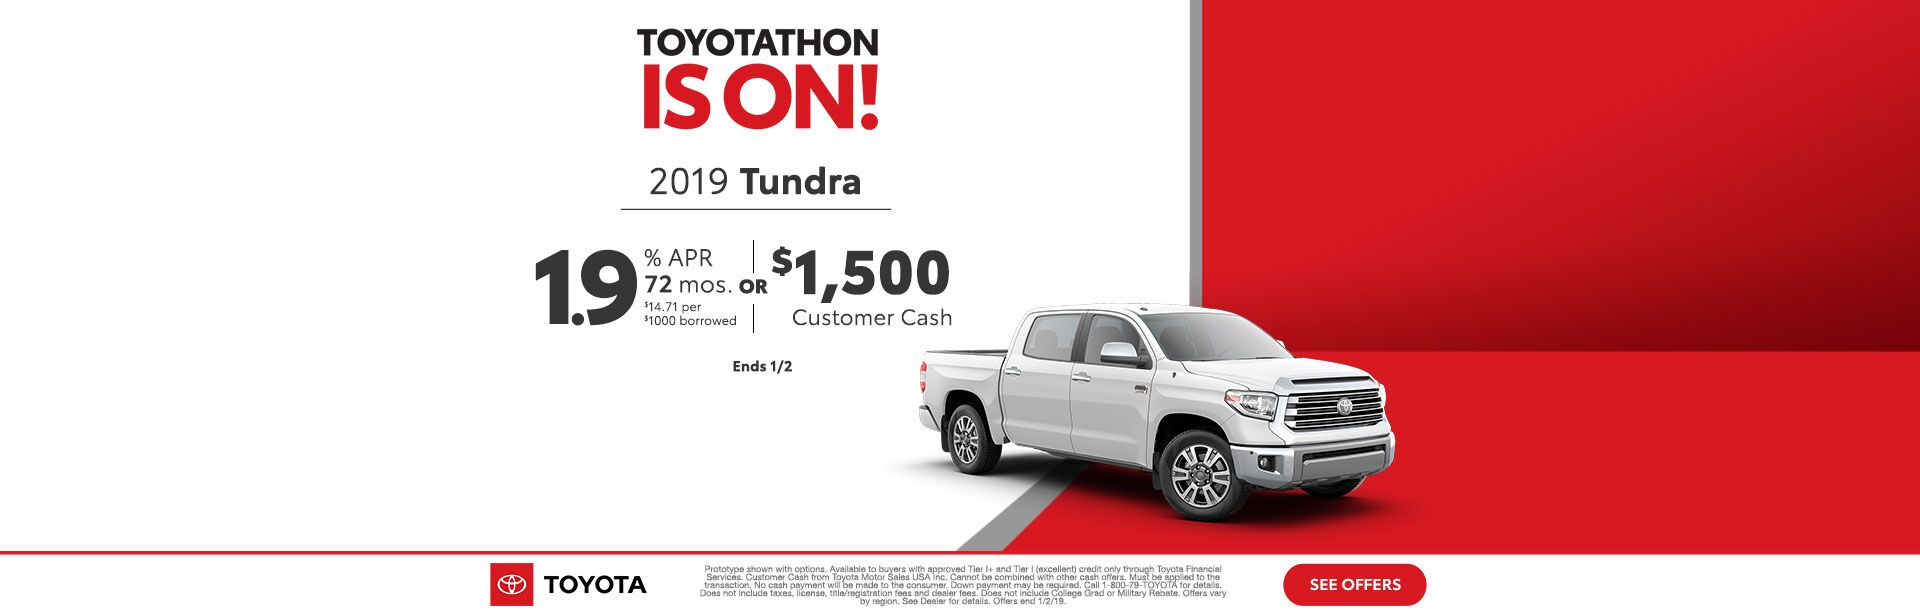 Toyotathon is on Tundra Dec 2018